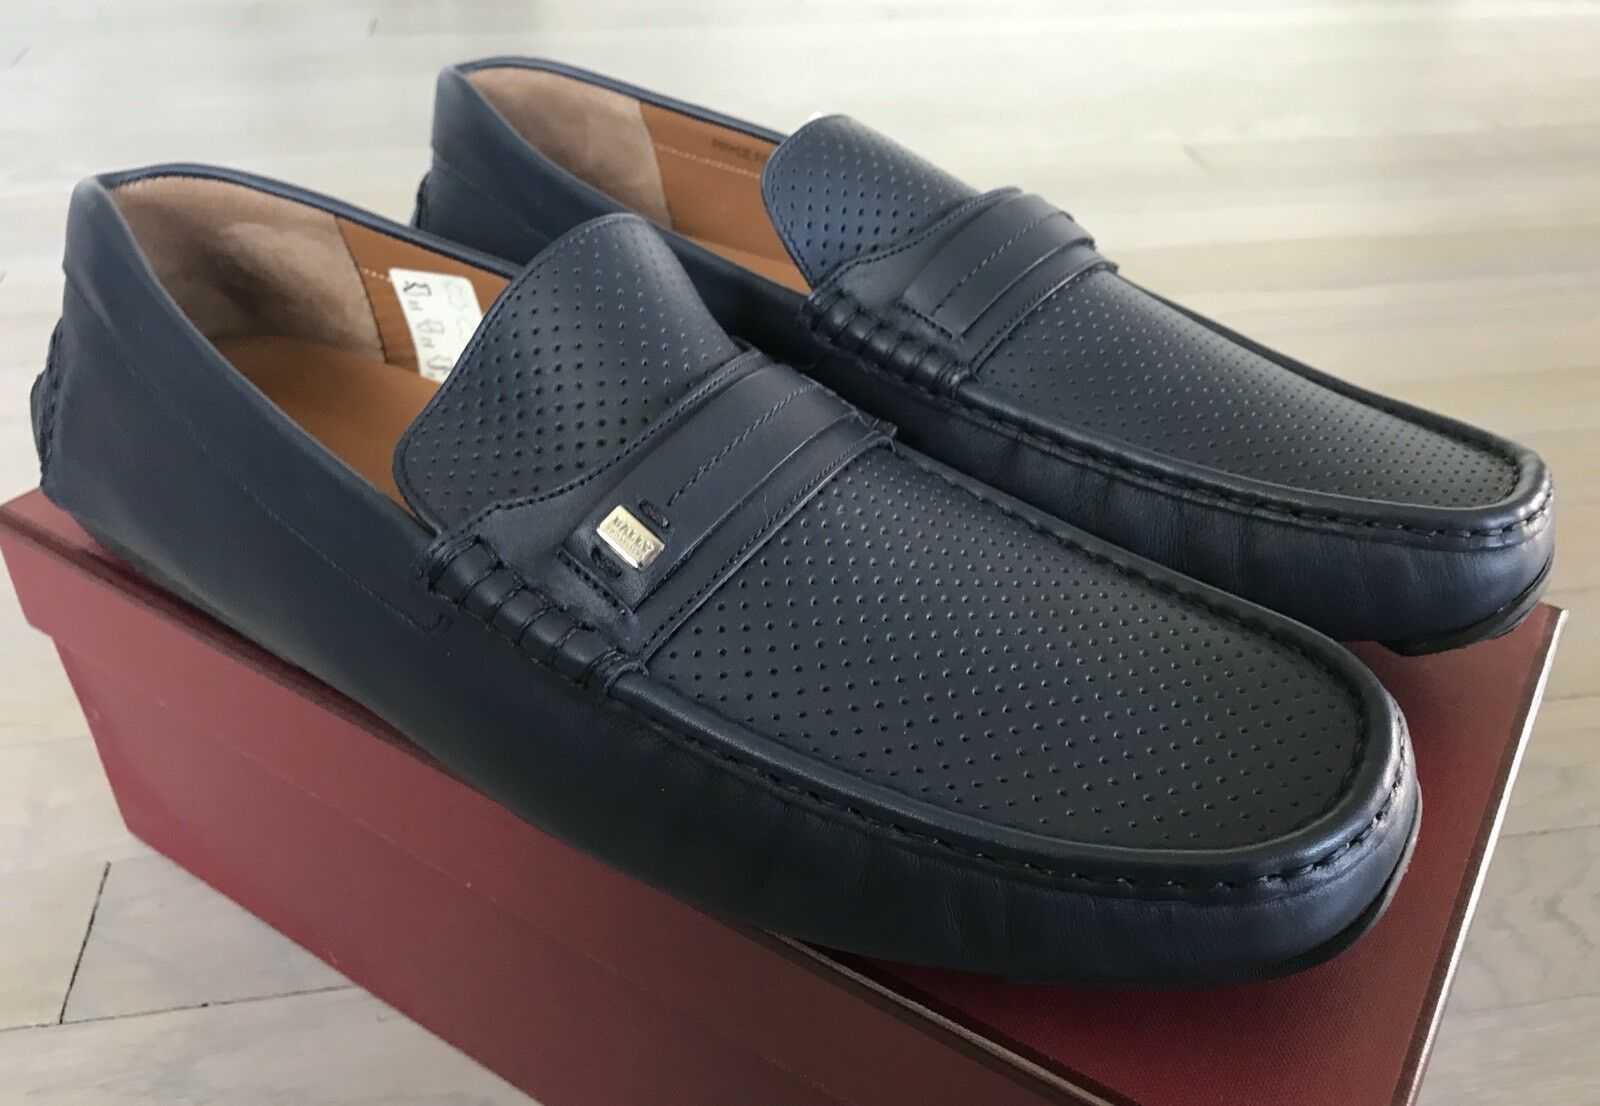 600  Bally Pryce Navy Perforated Pelle Driver Size   13 Made in Italy